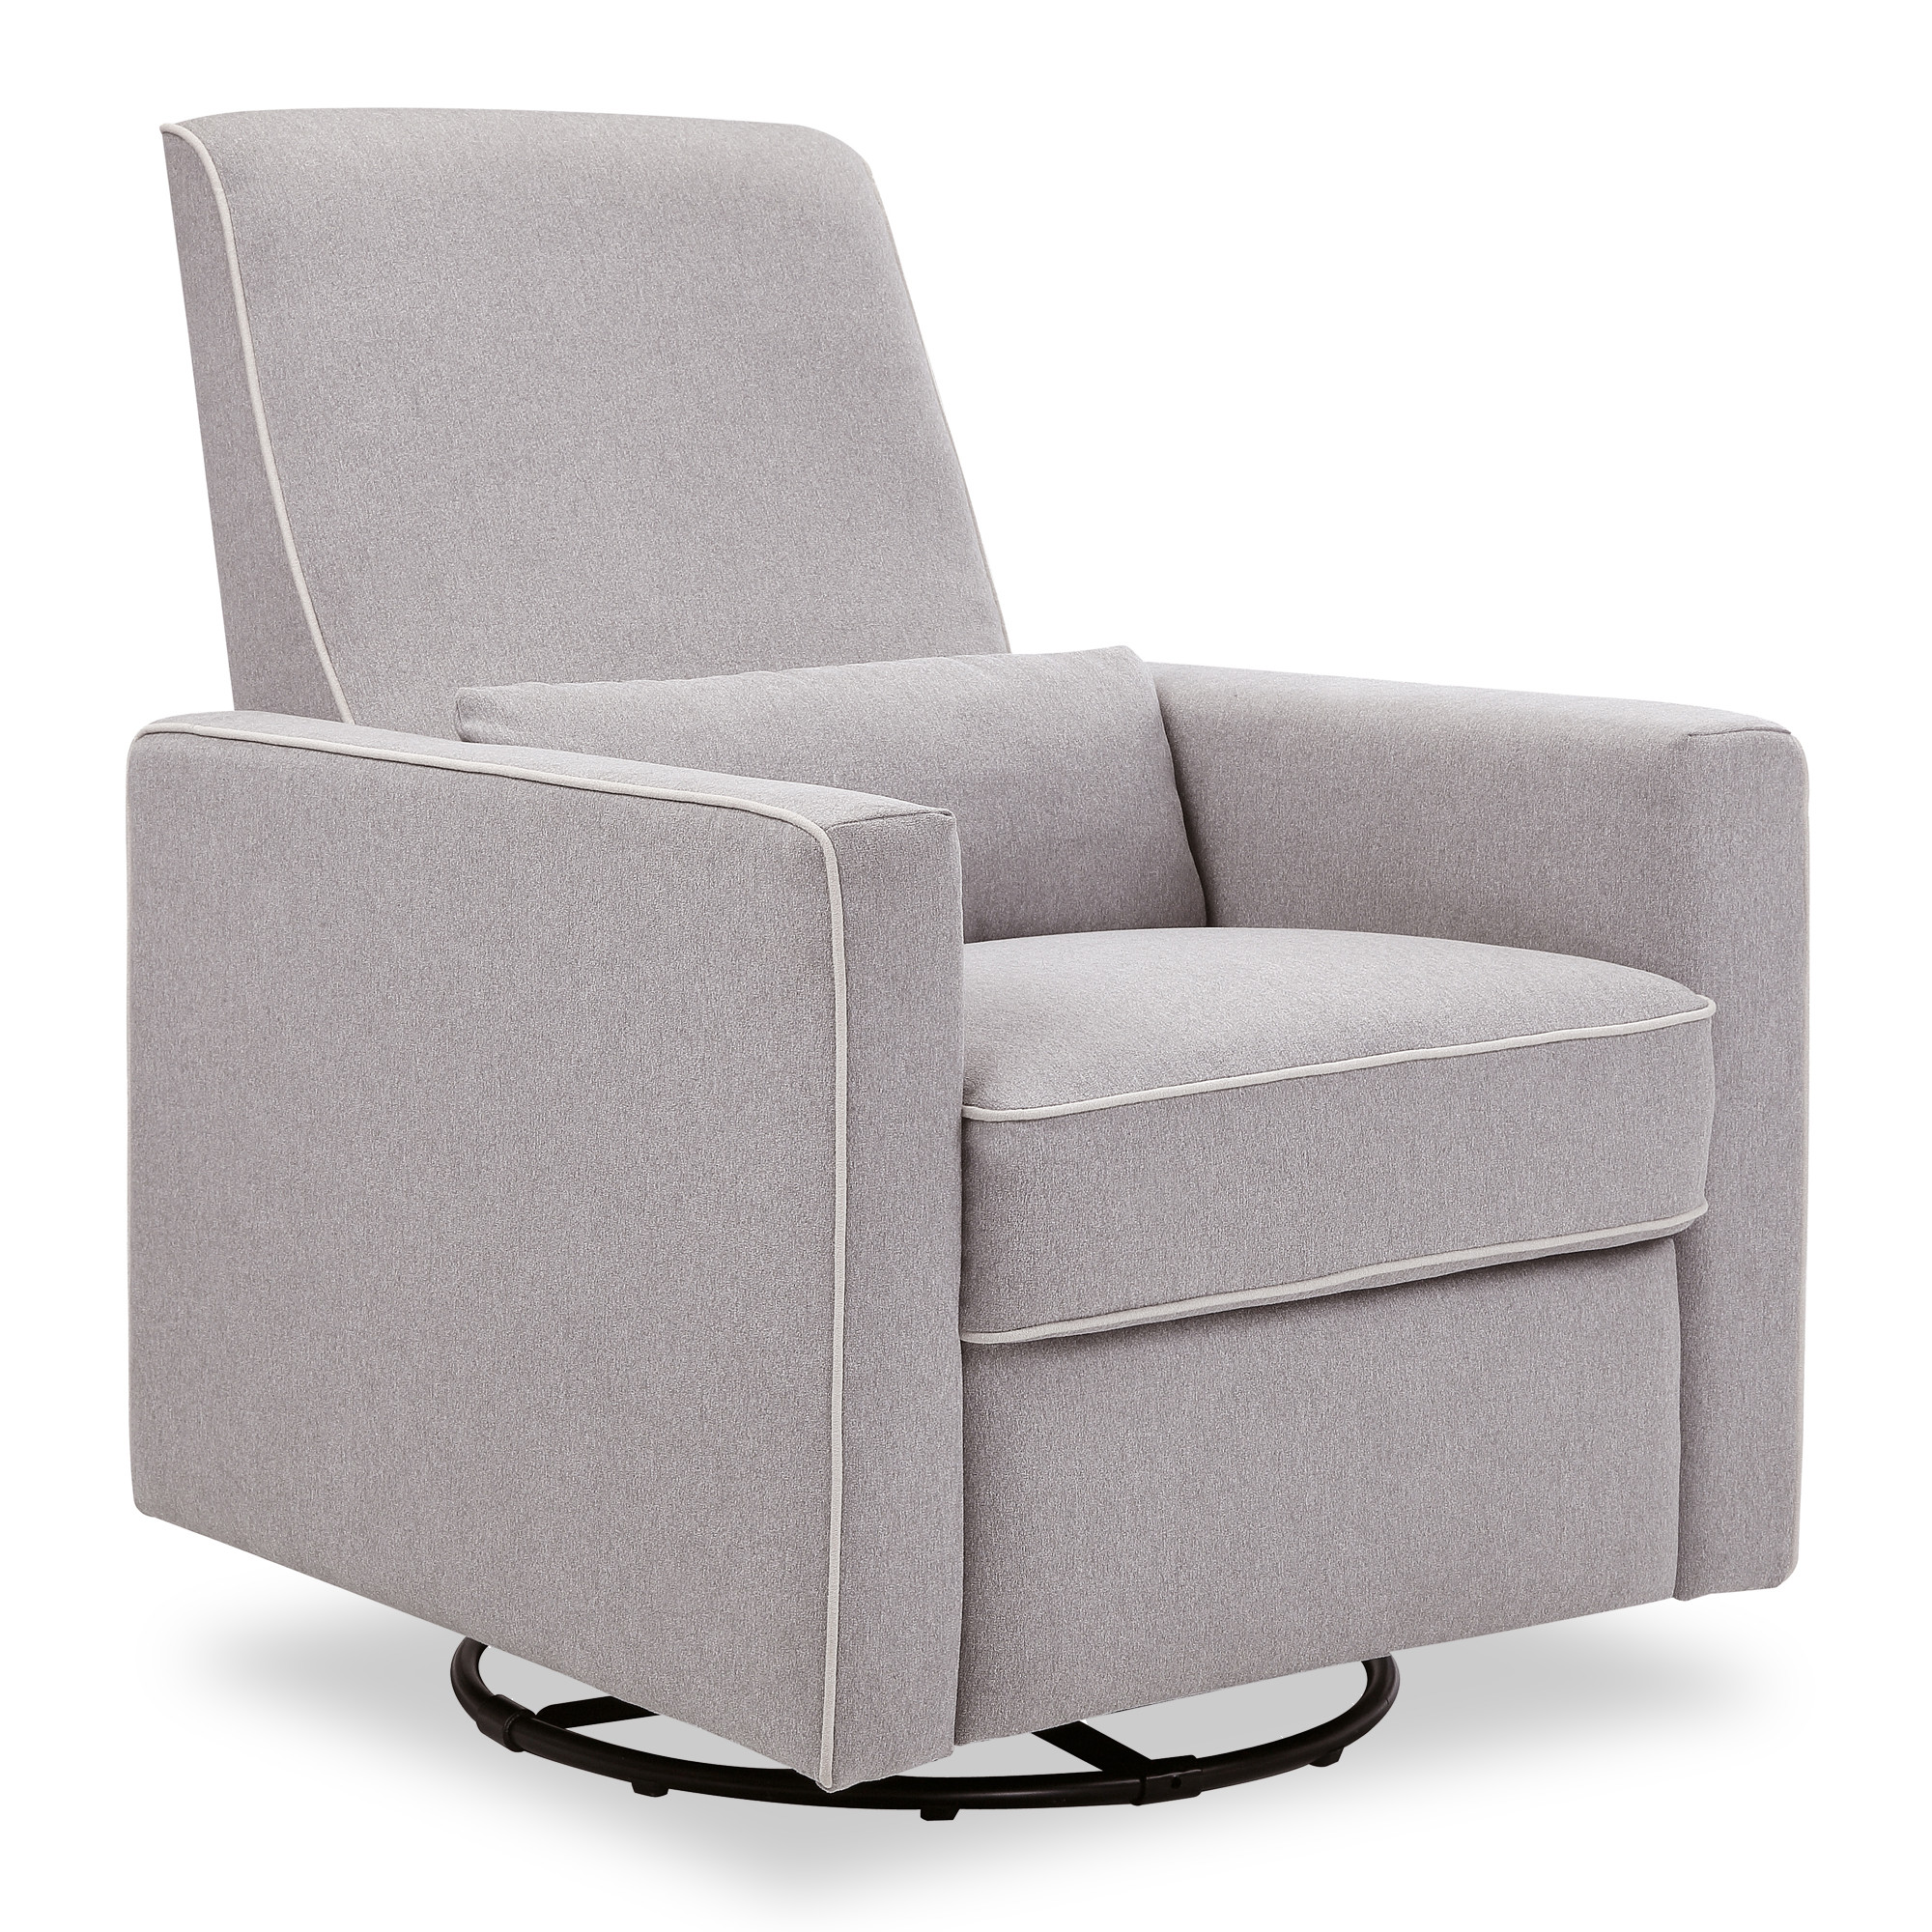 Admirable Buying Guide To Gliders Bed Bath Beyond Machost Co Dining Chair Design Ideas Machostcouk